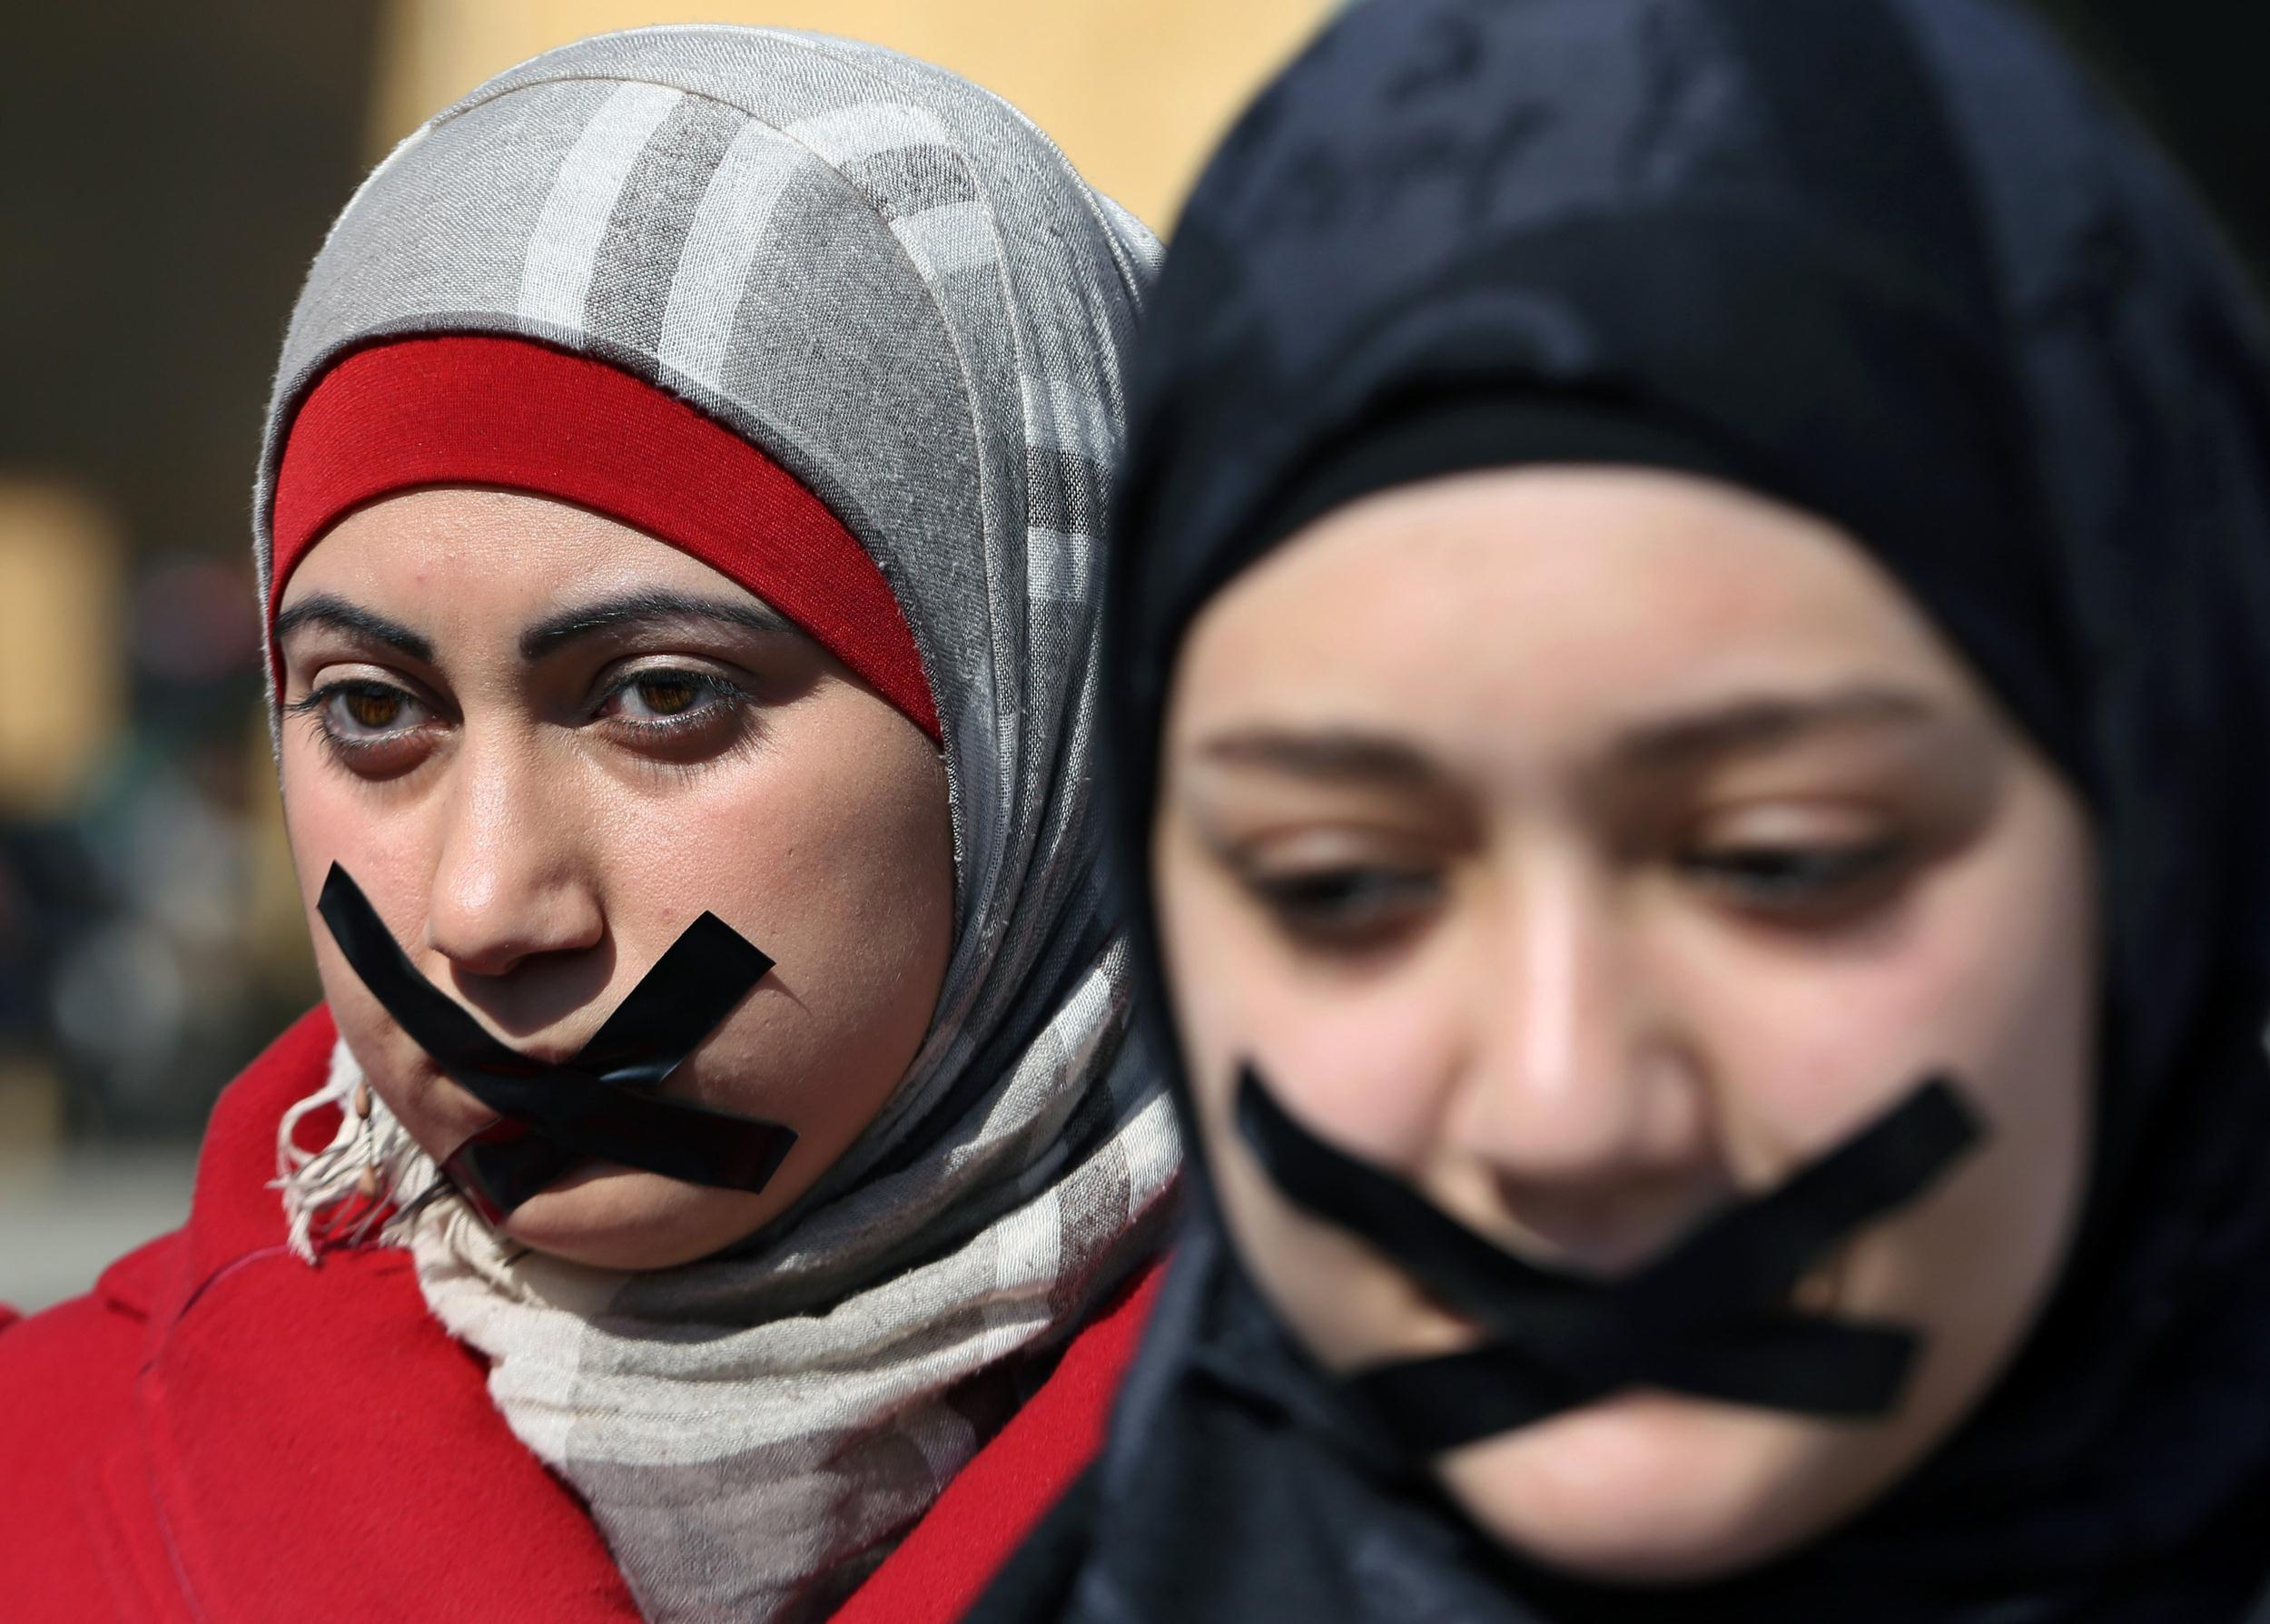 Image: Lebanese journalists and activists use tape to cover their mouths to show their solidarity with detained journalists in Egypt